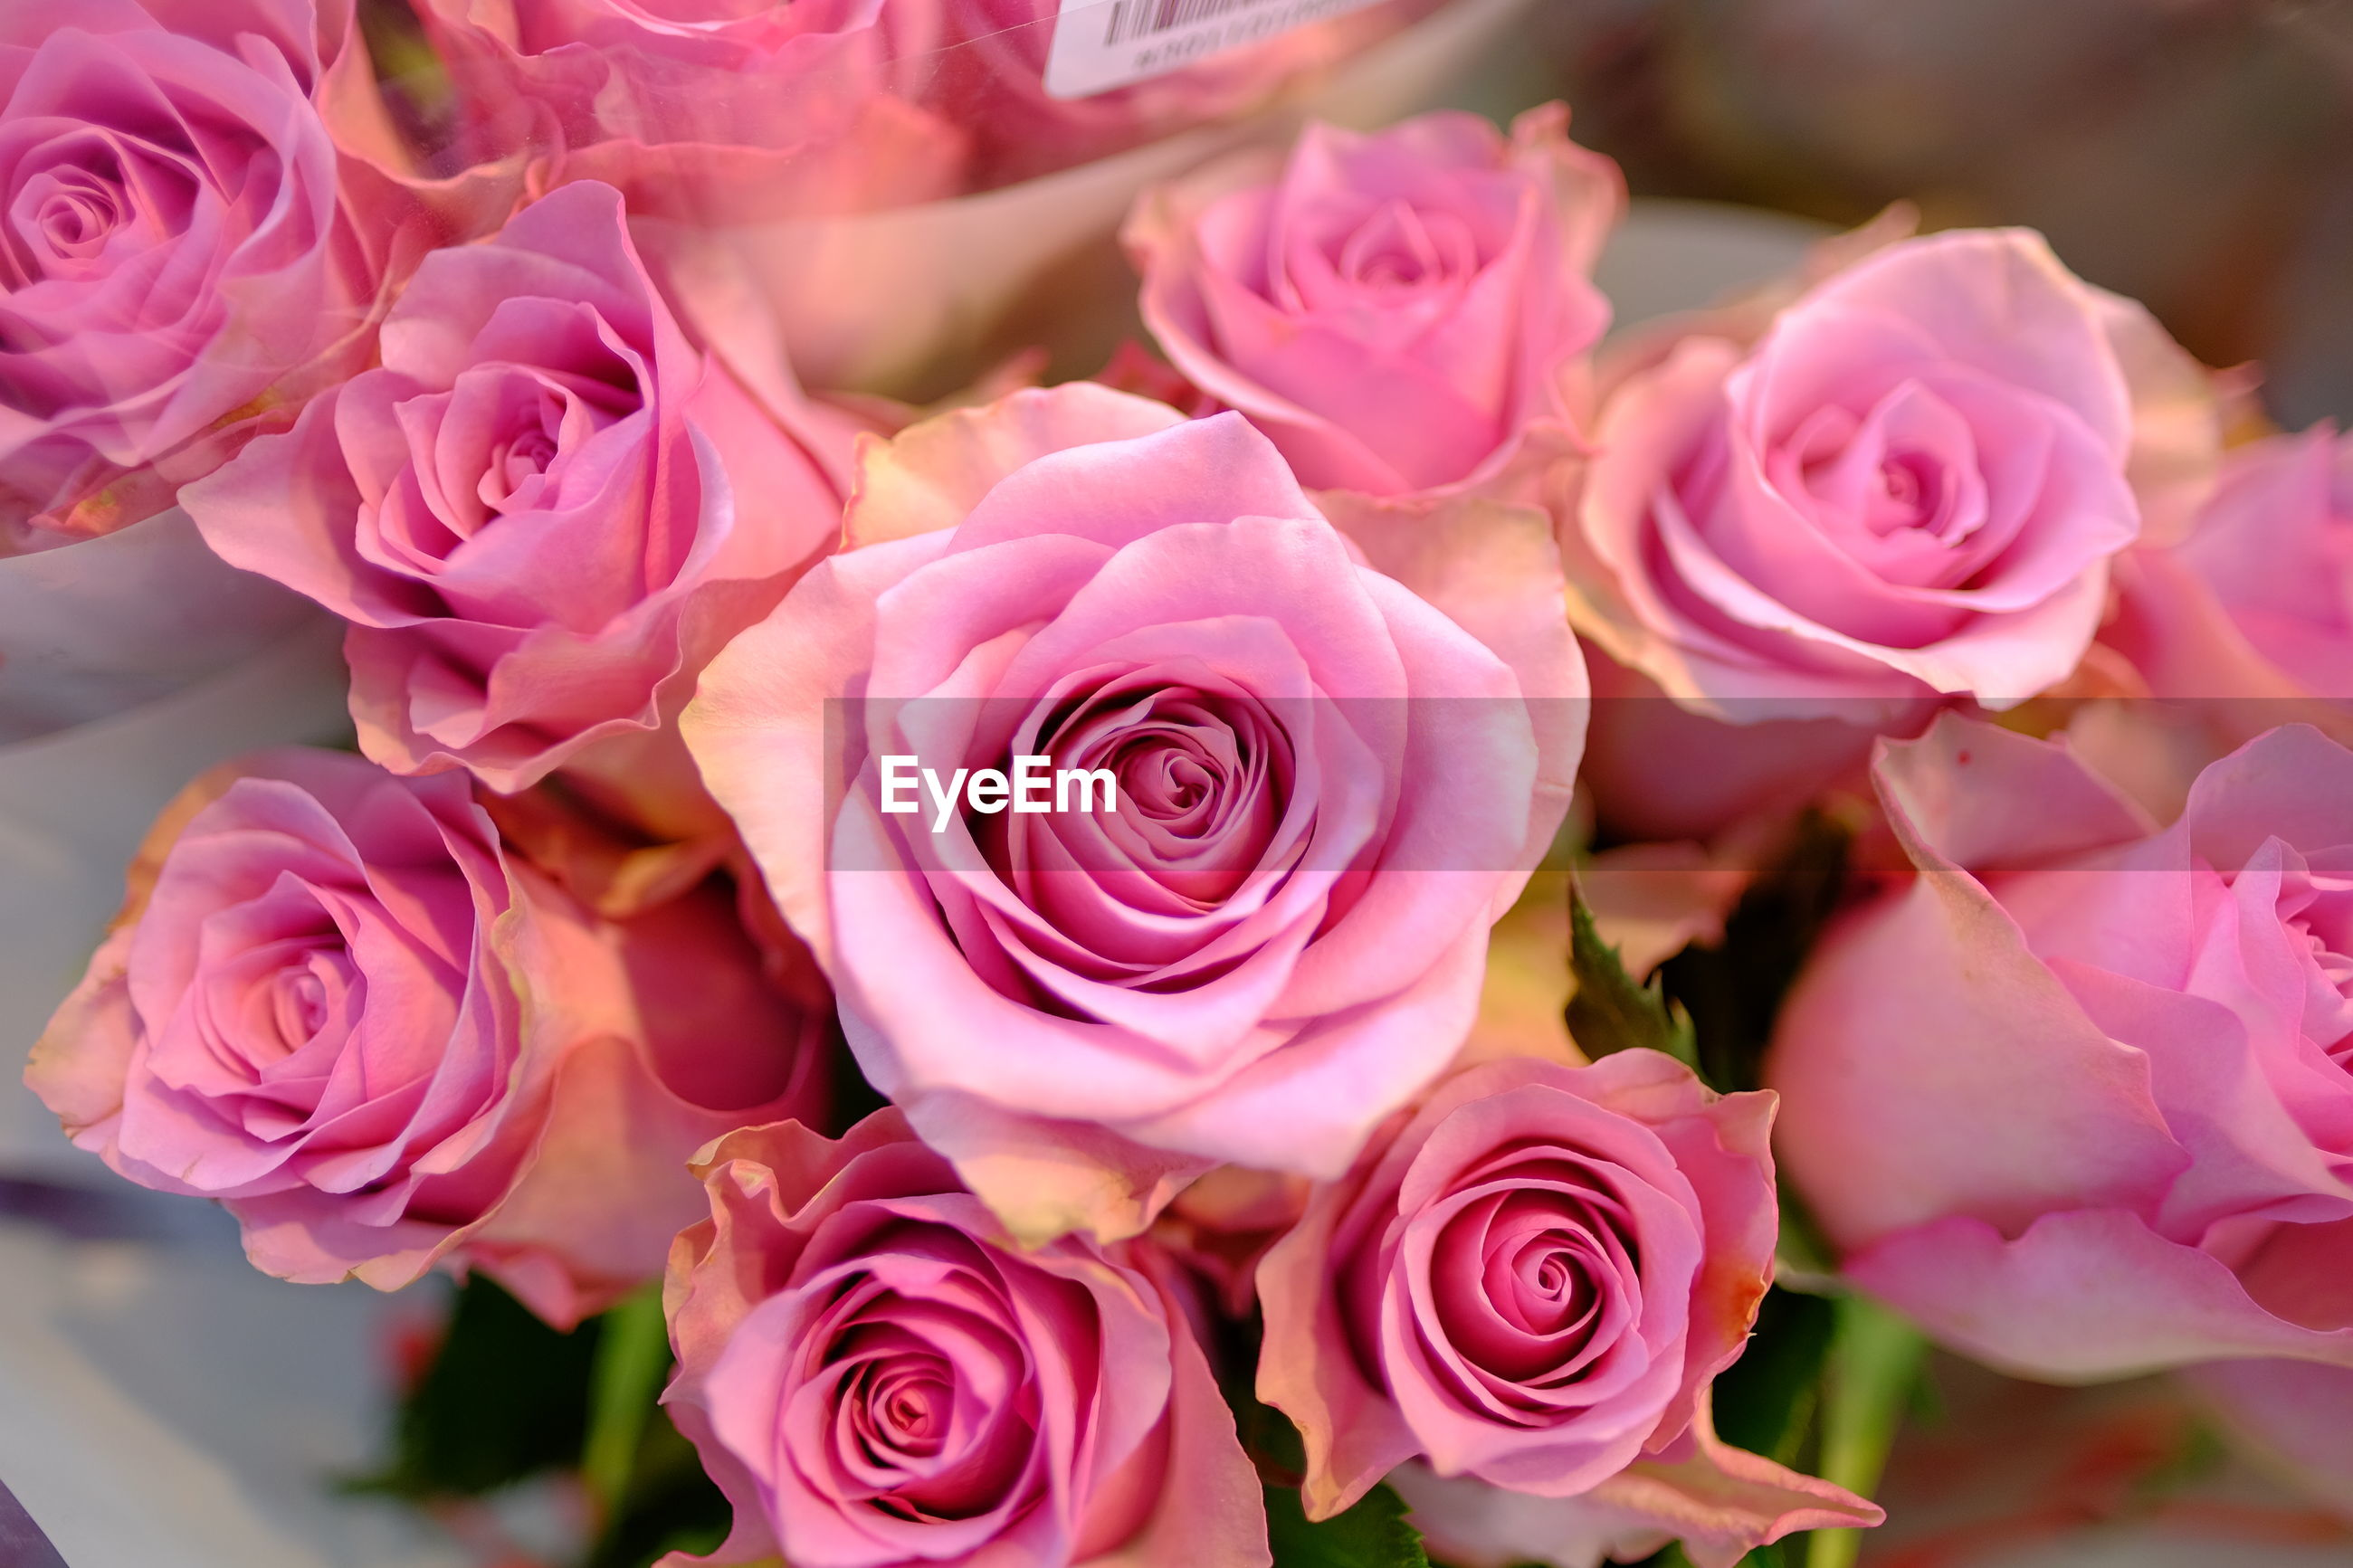 HIGH ANGLE VIEW OF ROSES